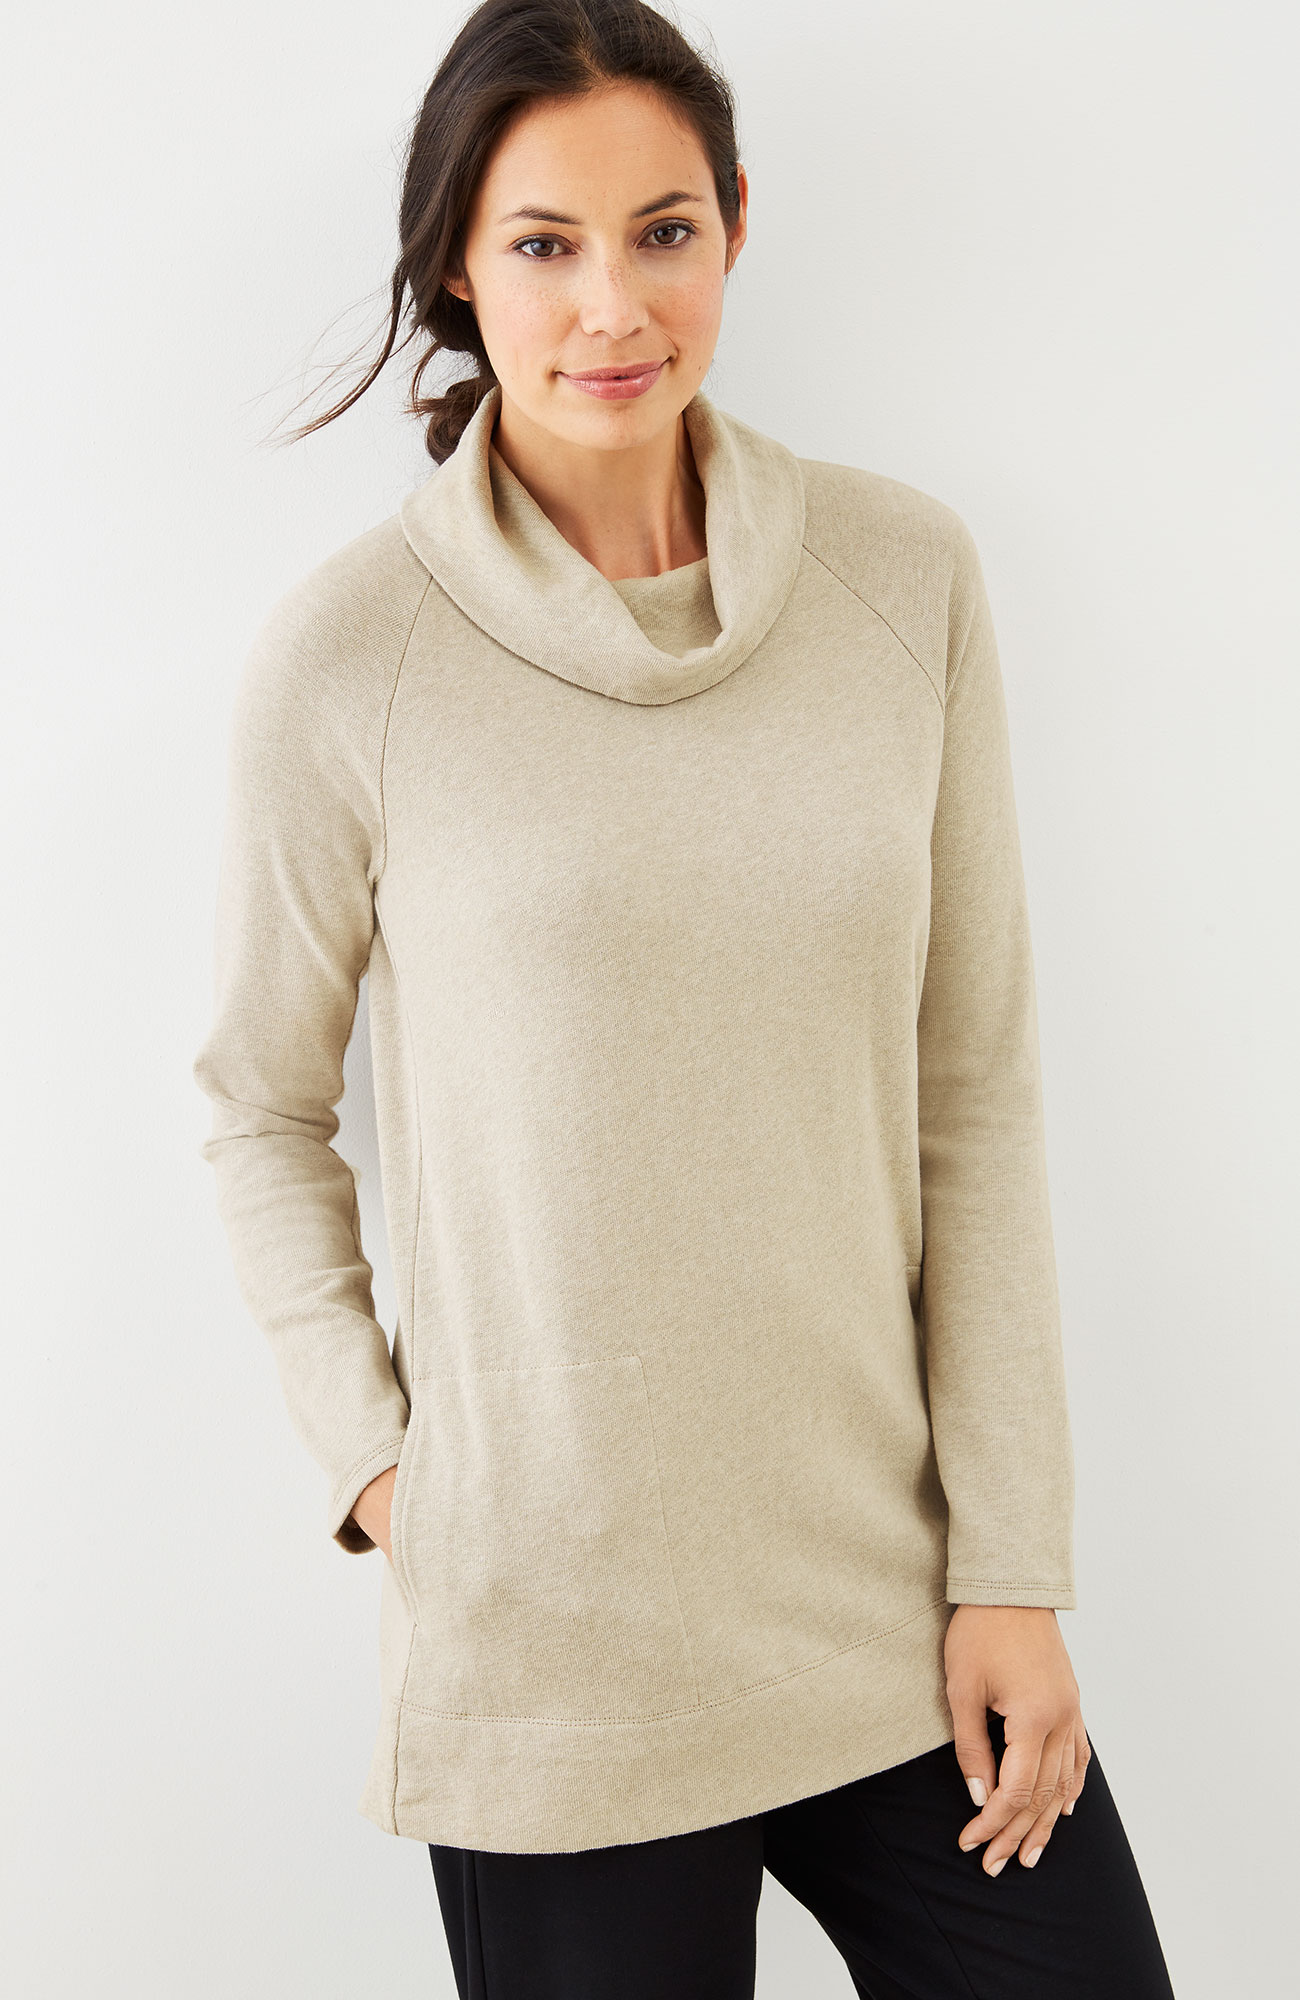 Pure Jill soft-touch cotton cowl-neck tunic